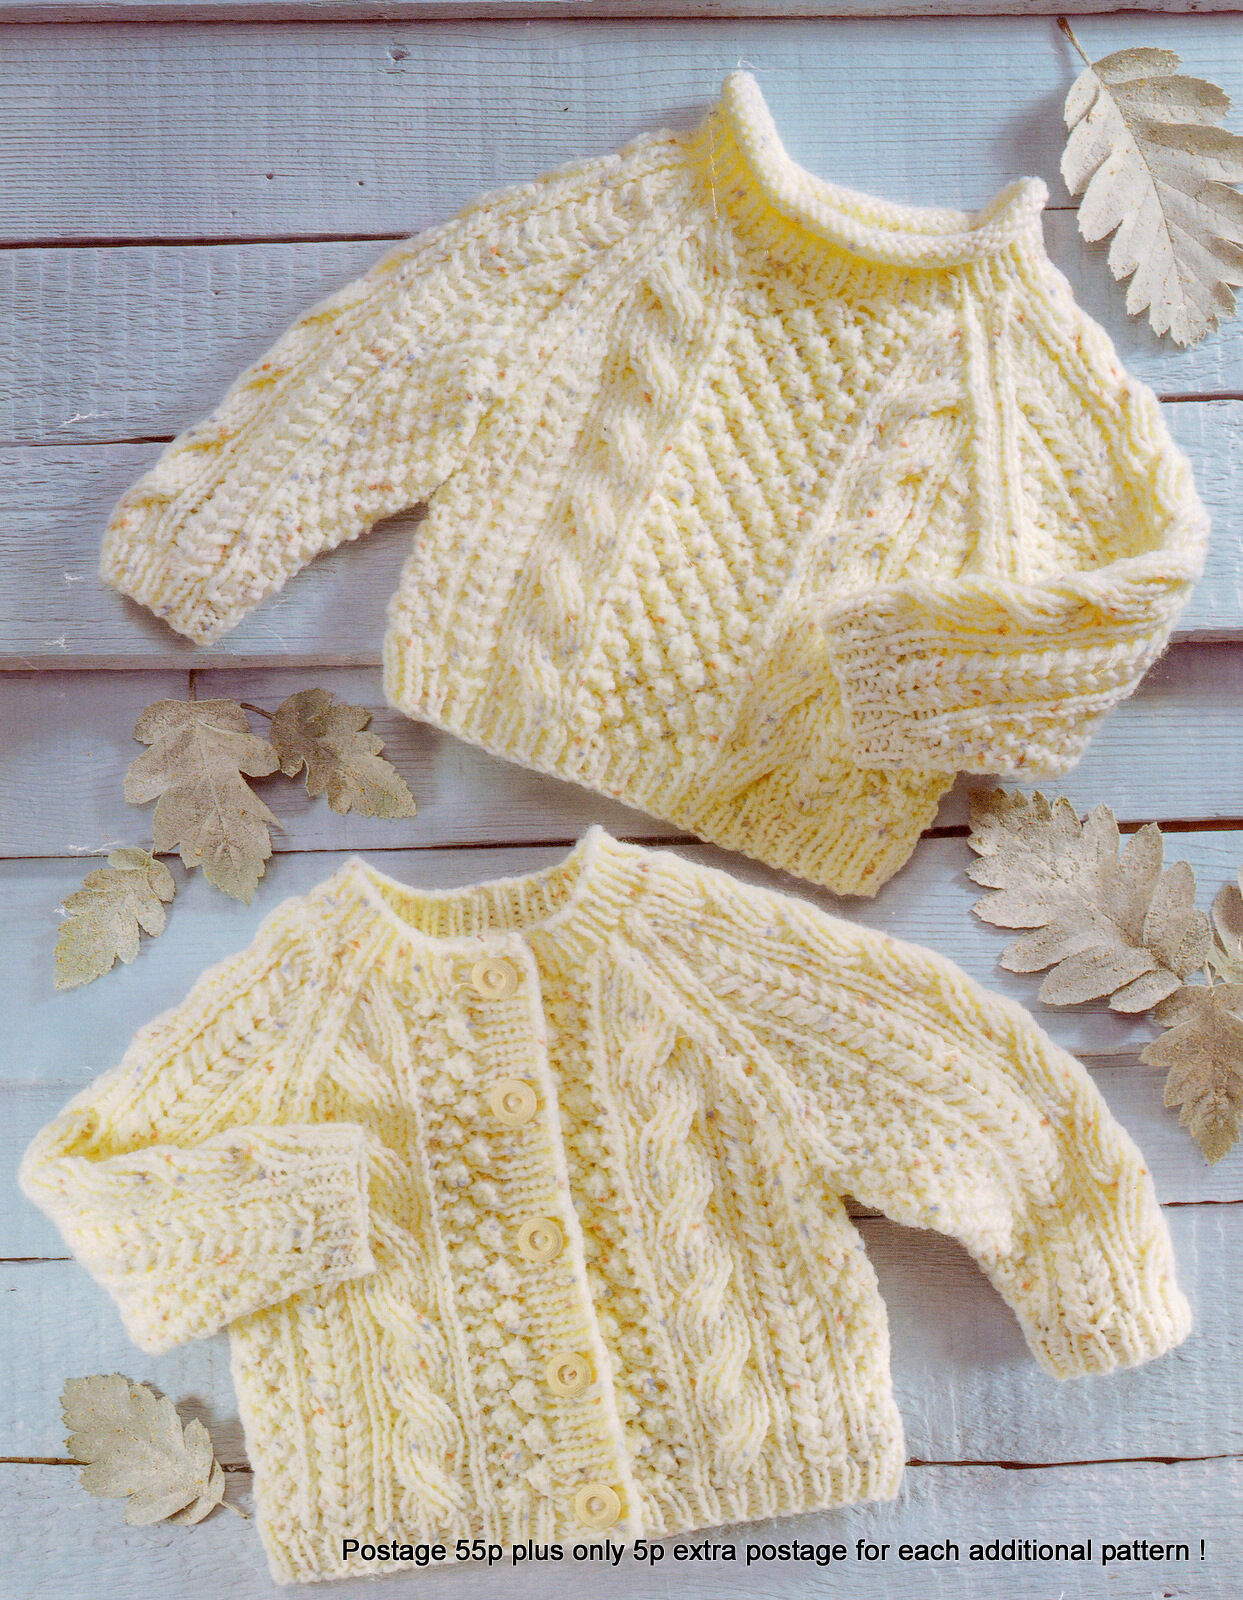 Knitting Rope For Sale : Baby aran cardigan sweater pattern ropes popcorn